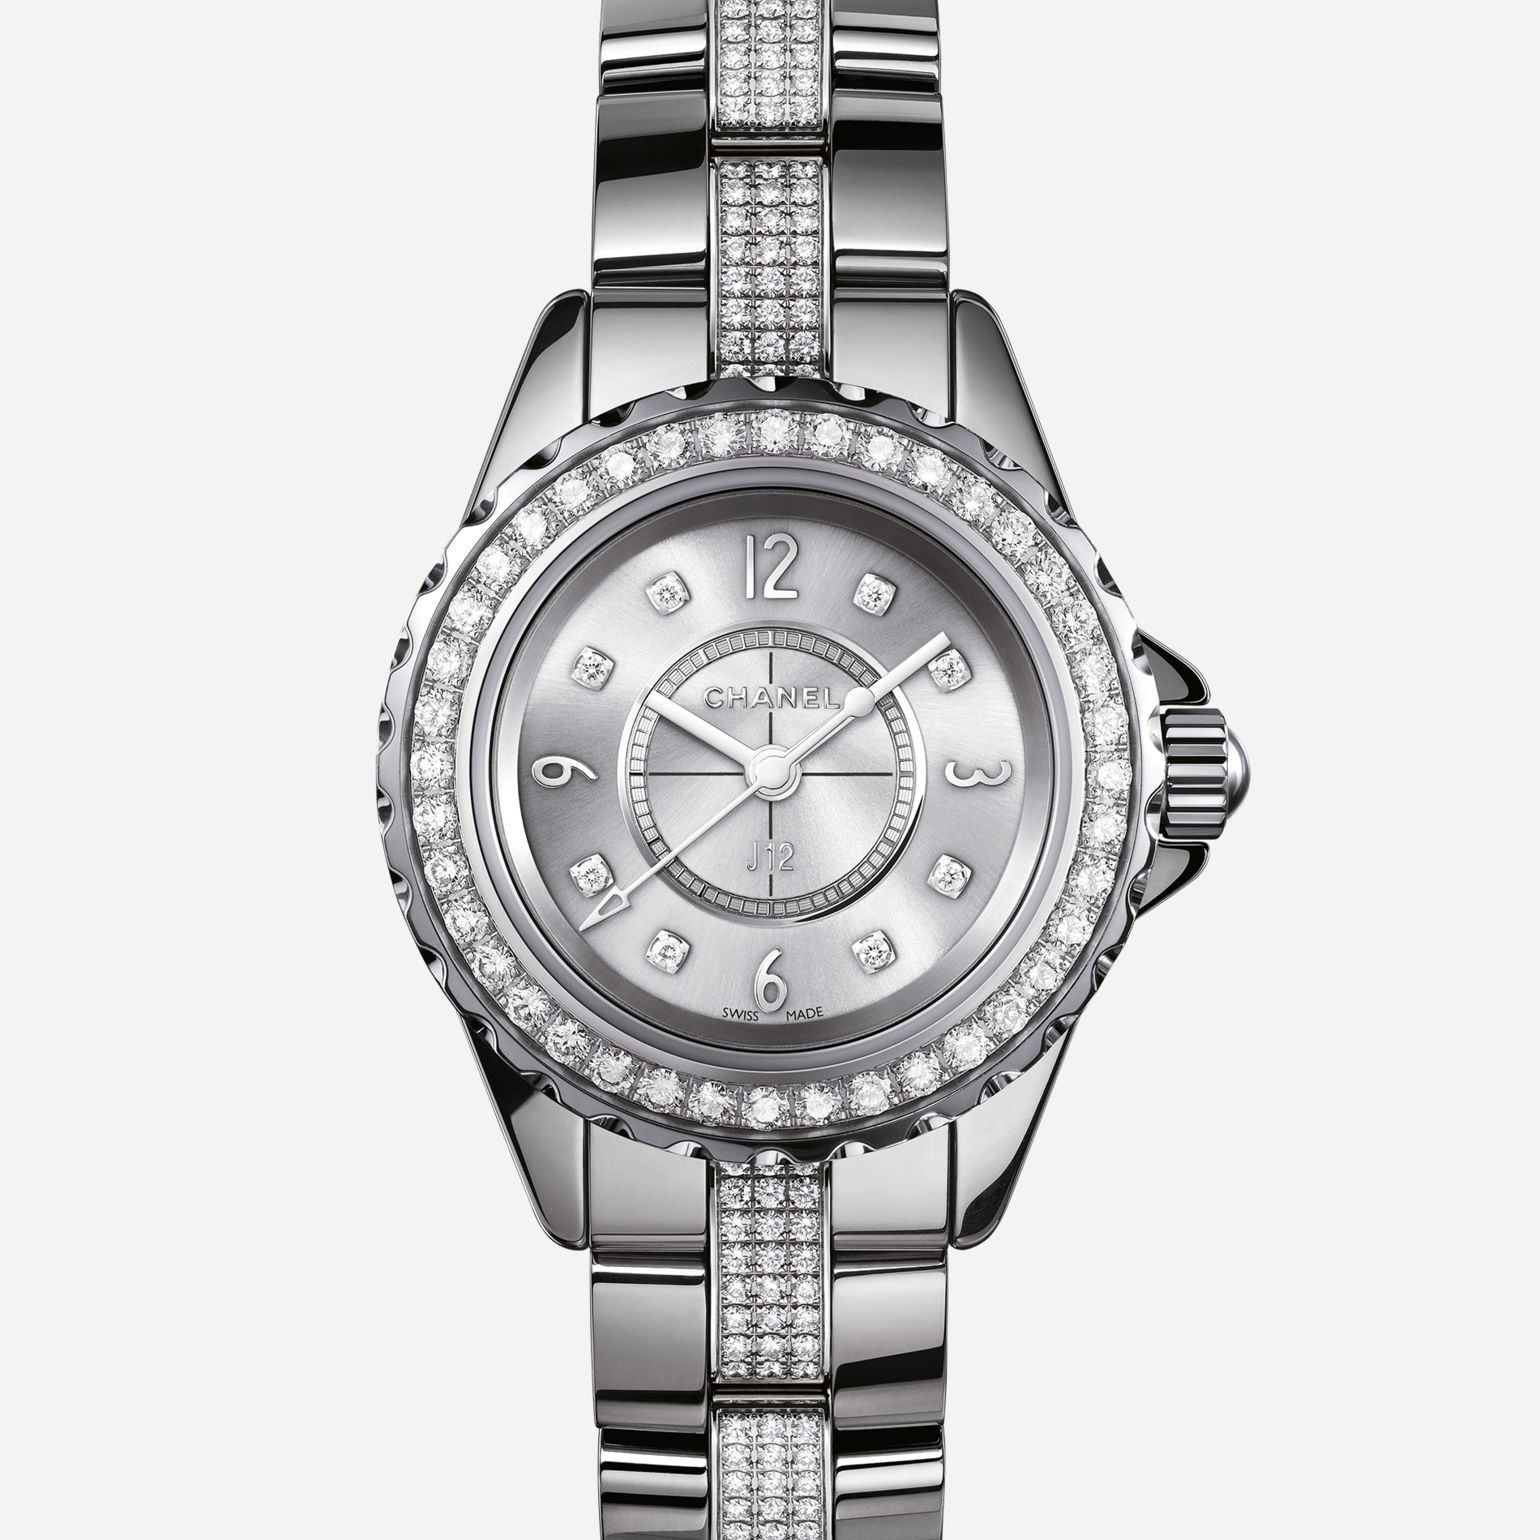 J12 Watch Titanium ceramic and steel, bezel, indicators, and strap set with diamonds